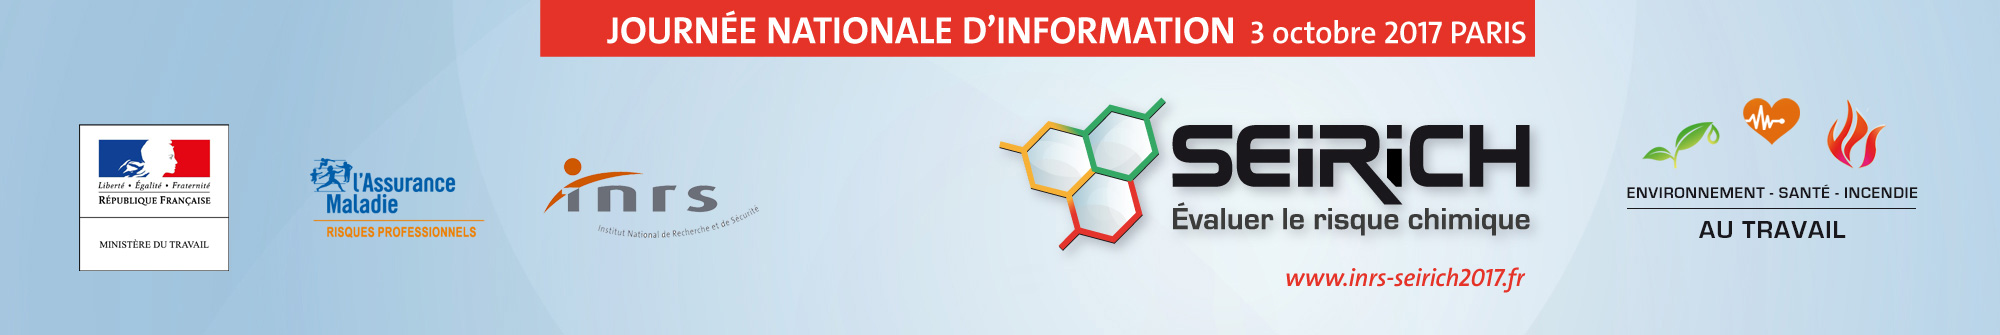 Bandeau de la journée nationale d'information Seirich